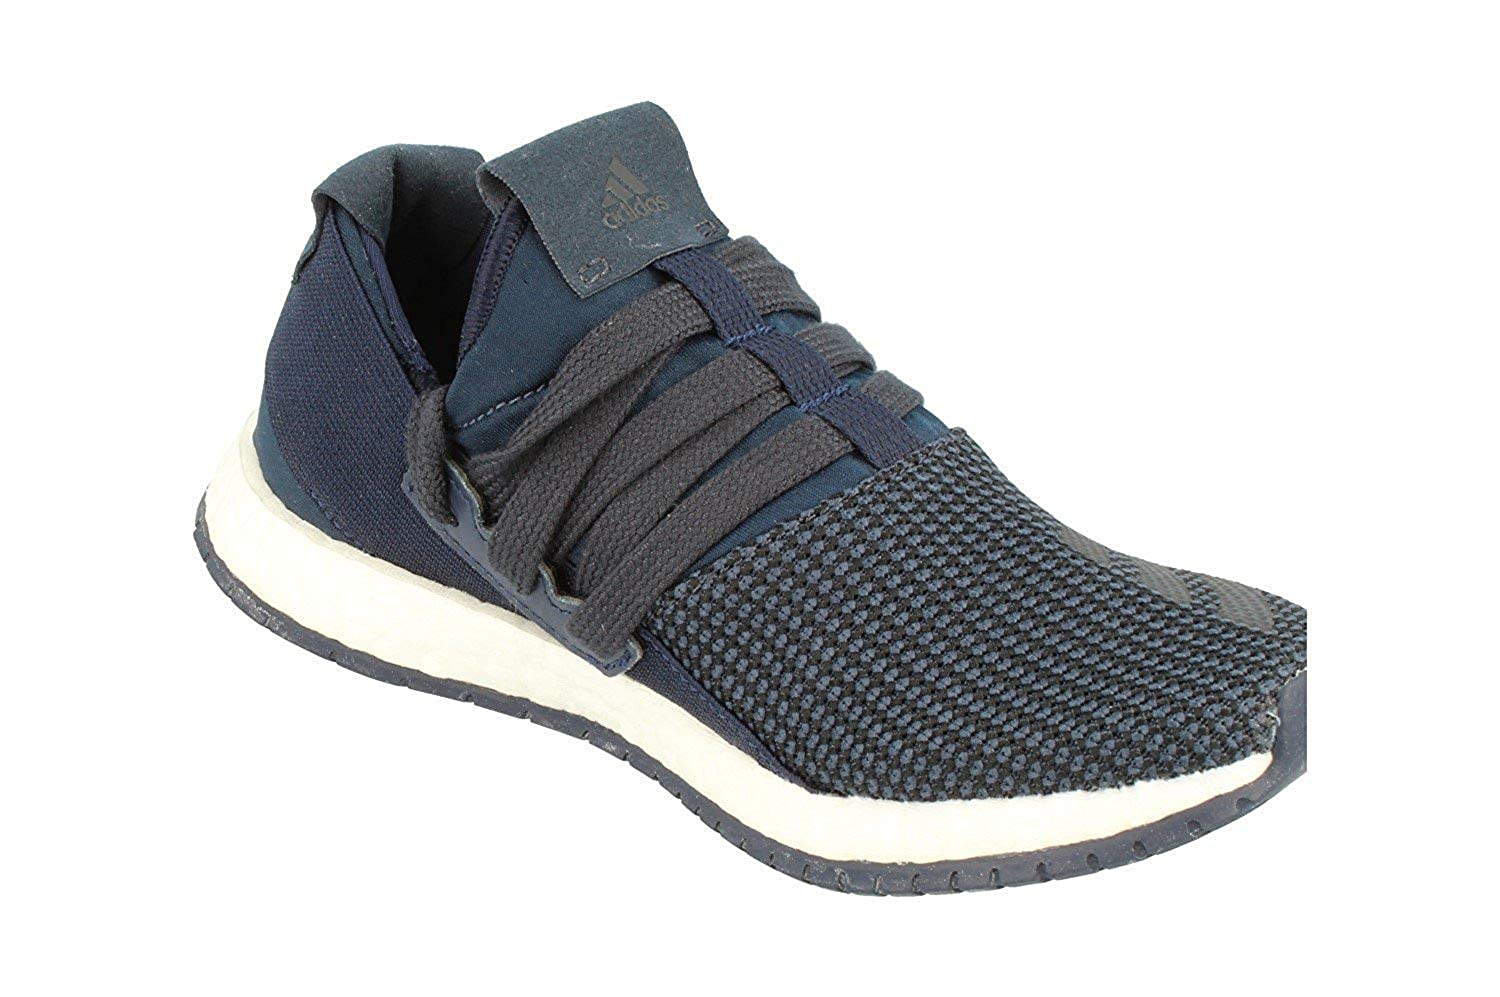 san francisco 2076f 96ee2 adidas Pureboost R M Unisex Running Trainers Sneakers Amazon.co.uk Shoes   Bags